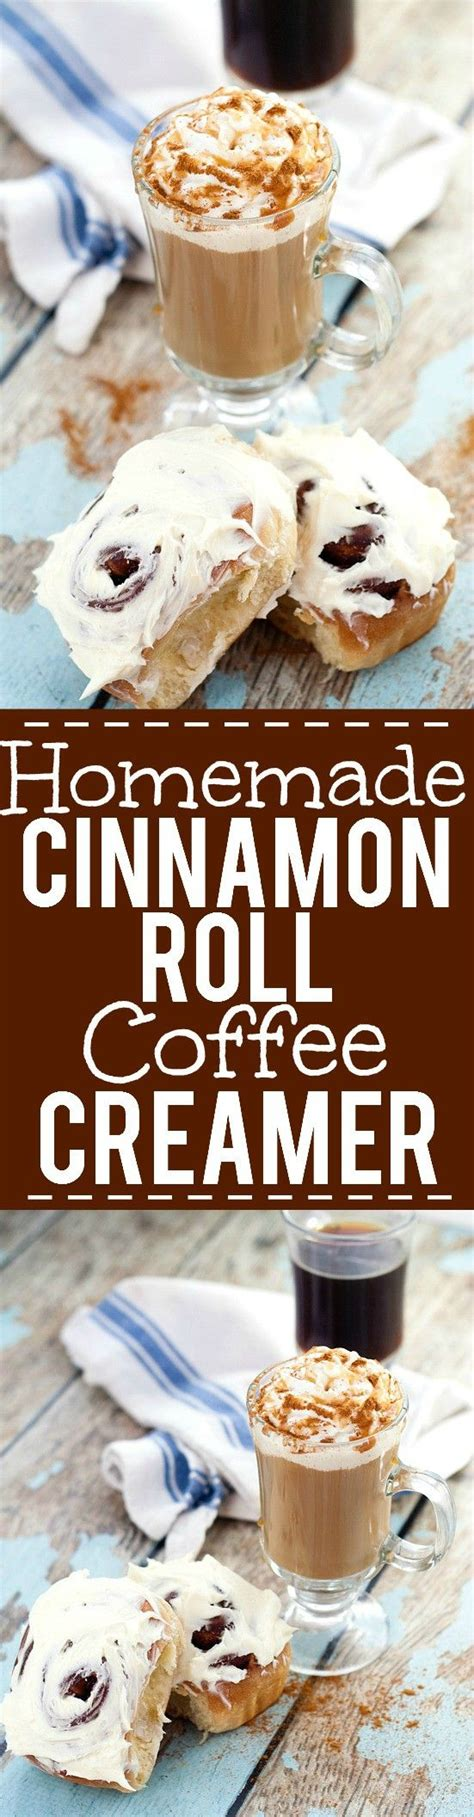 For a serving size of. Homemade Cinnamon Roll Coffee Creamer recipe - Have your coffee as a decadent breakfast with ...